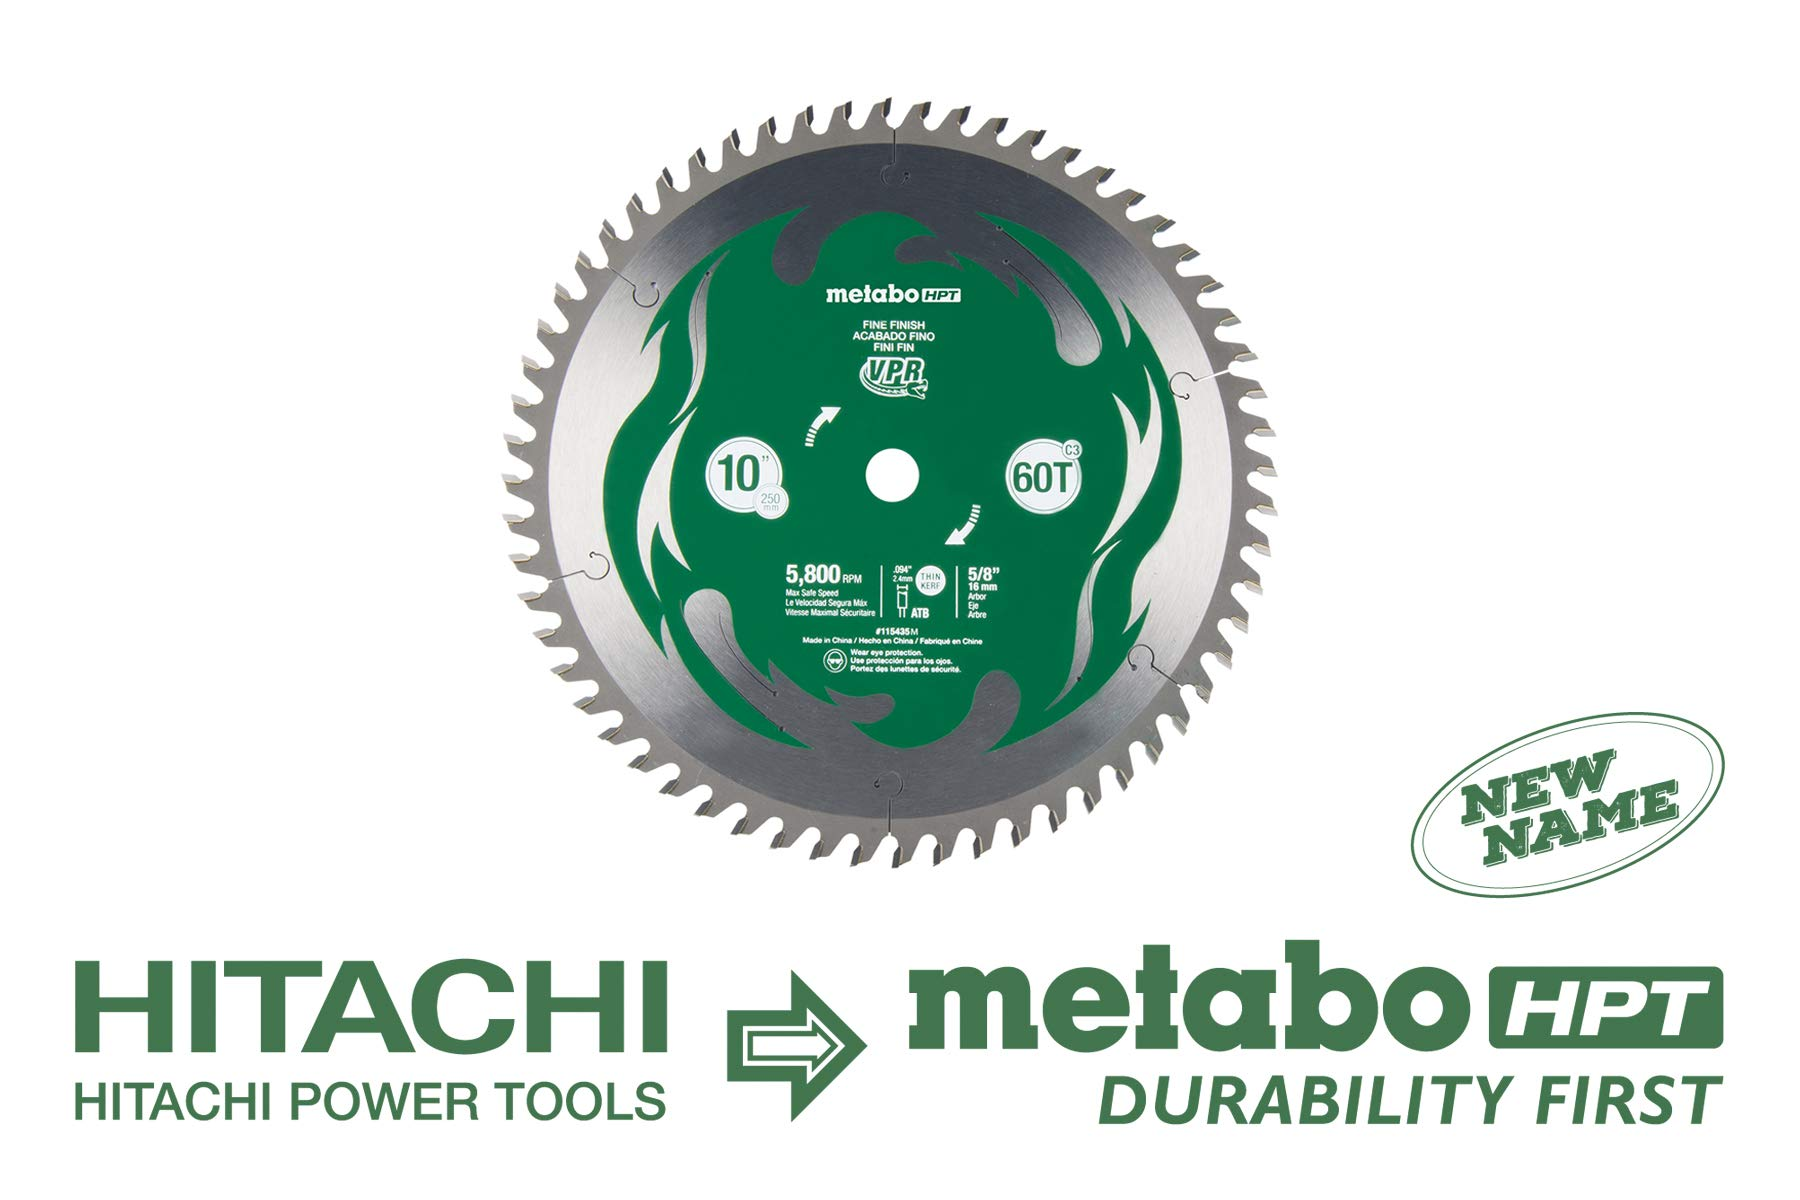 Metabo HPT 115435M 10'' Miter Saw/Table Saw Blade, 60T Fine Finish, Large Micrograin Carbide Teeth, 5, 800 Max Rpm by Metabo HPT